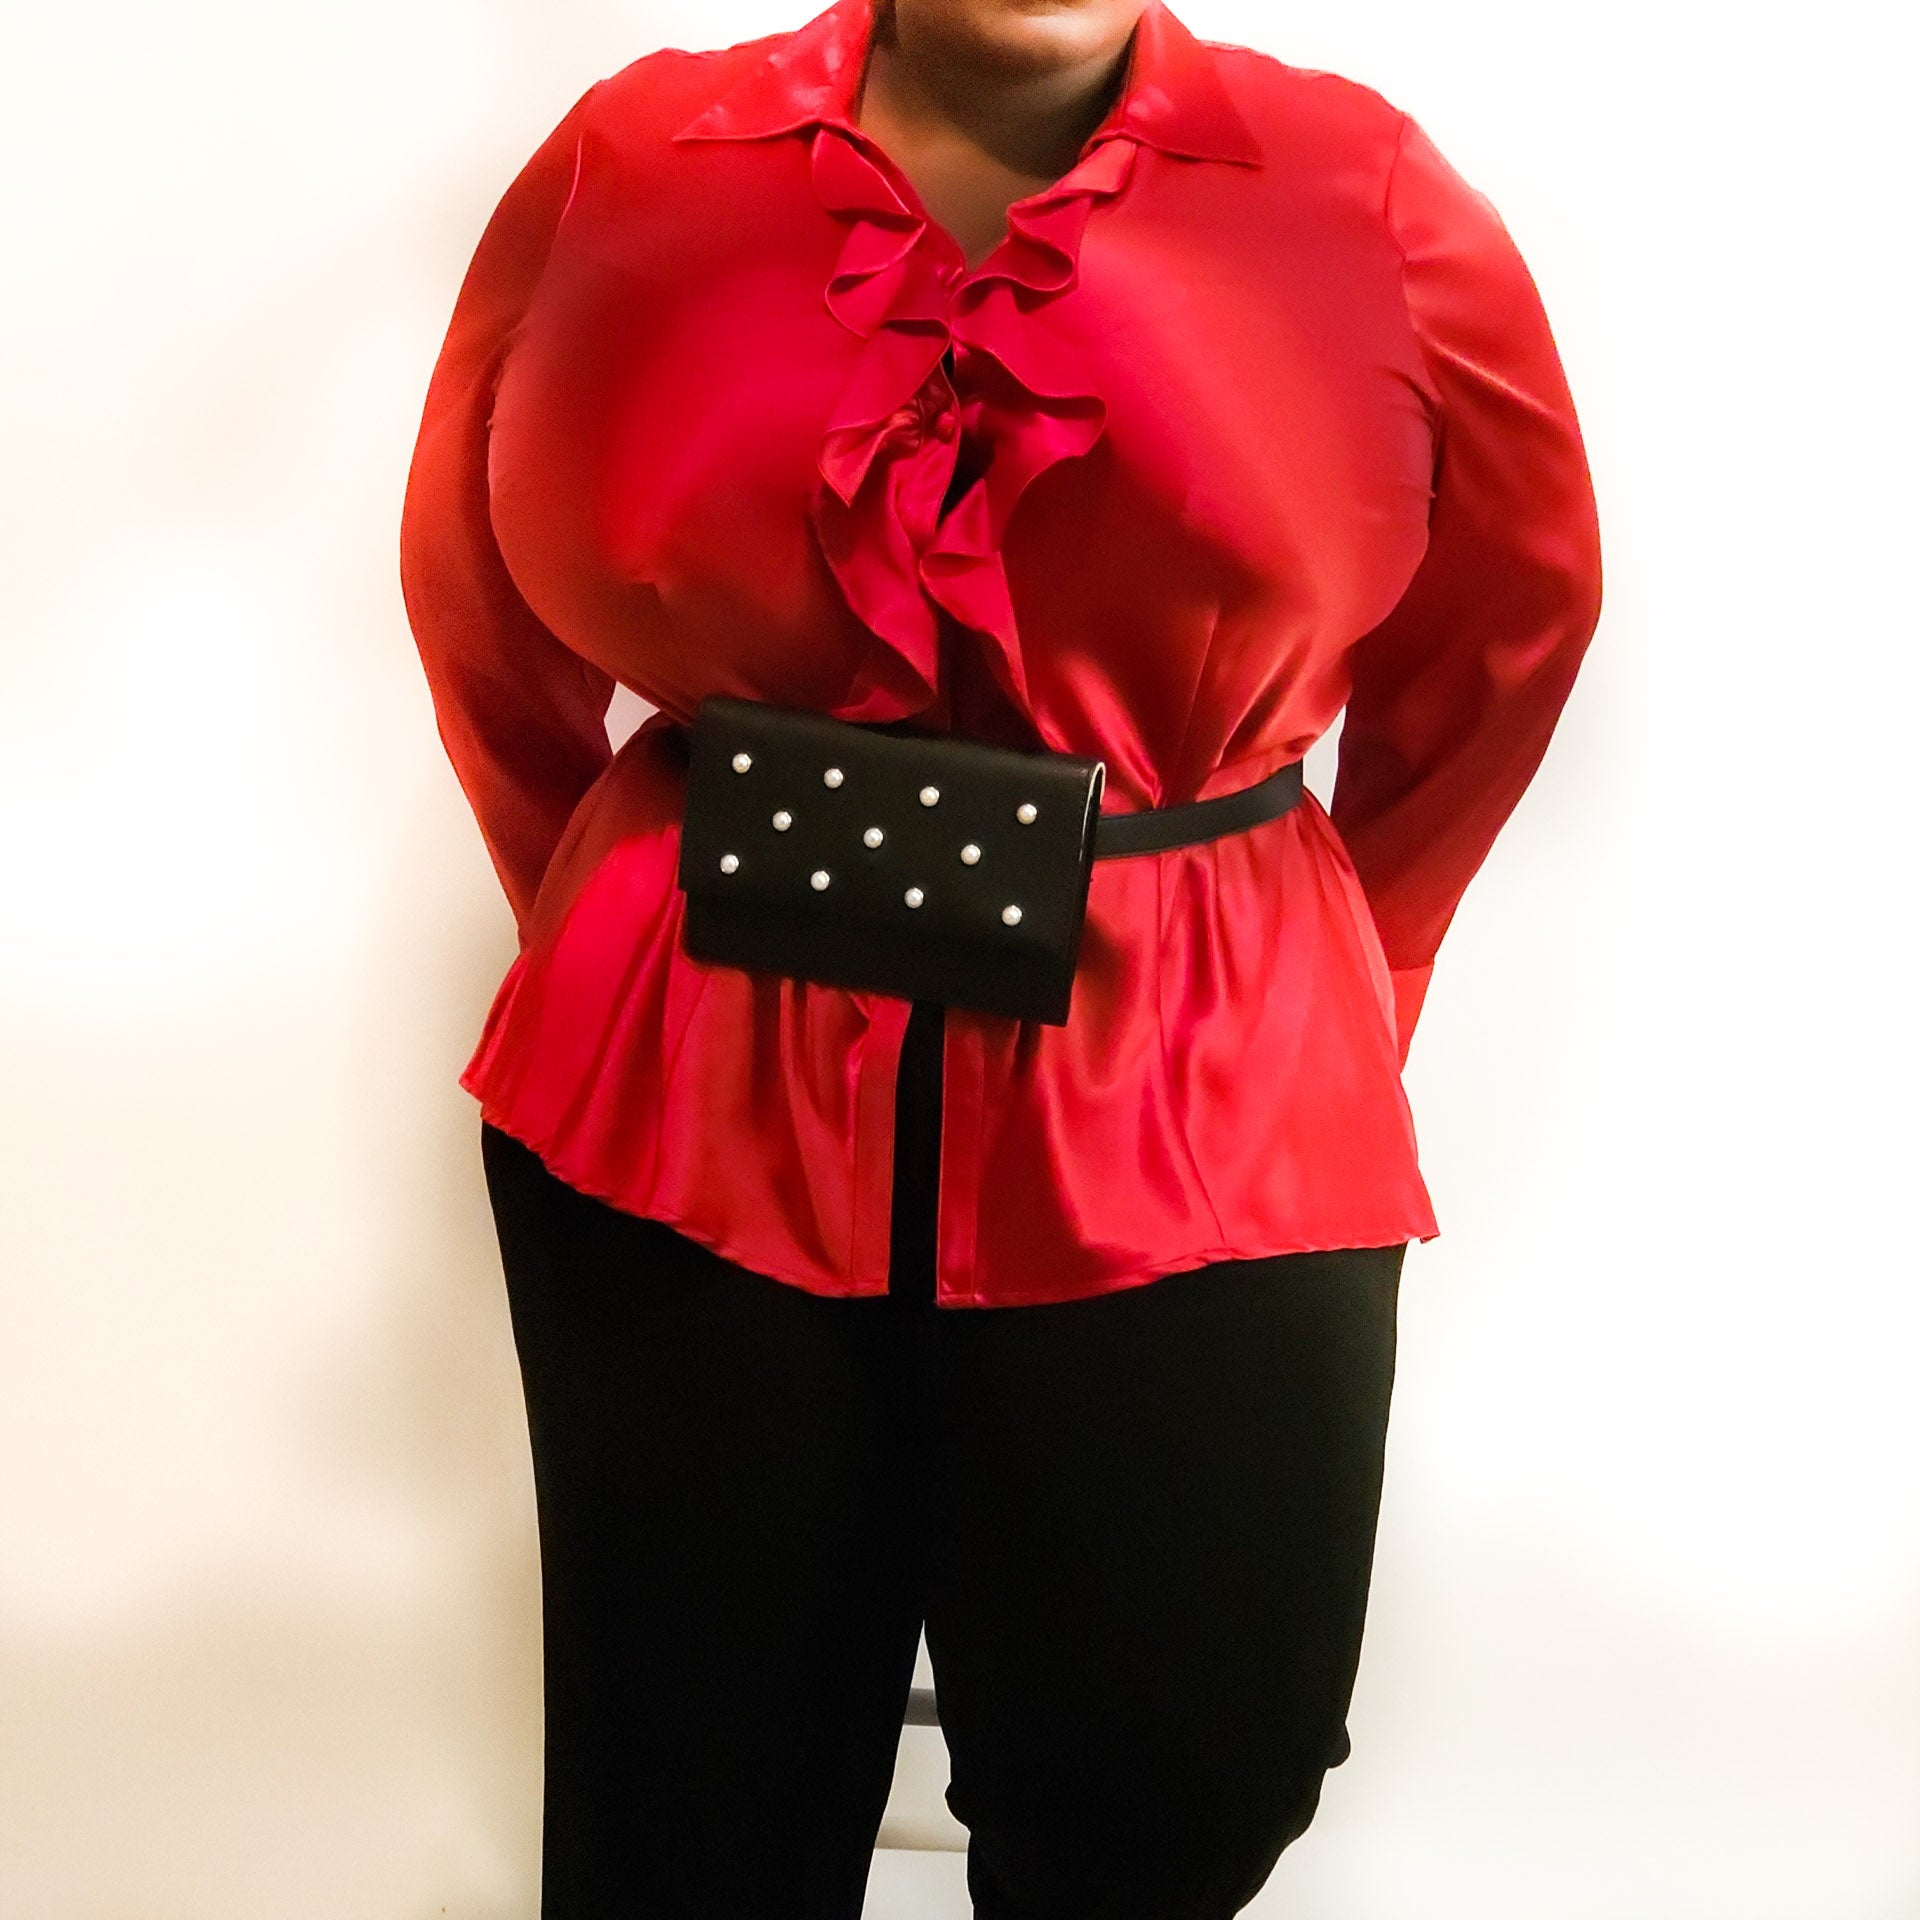 Satin Ruffled Shirt: Size 16